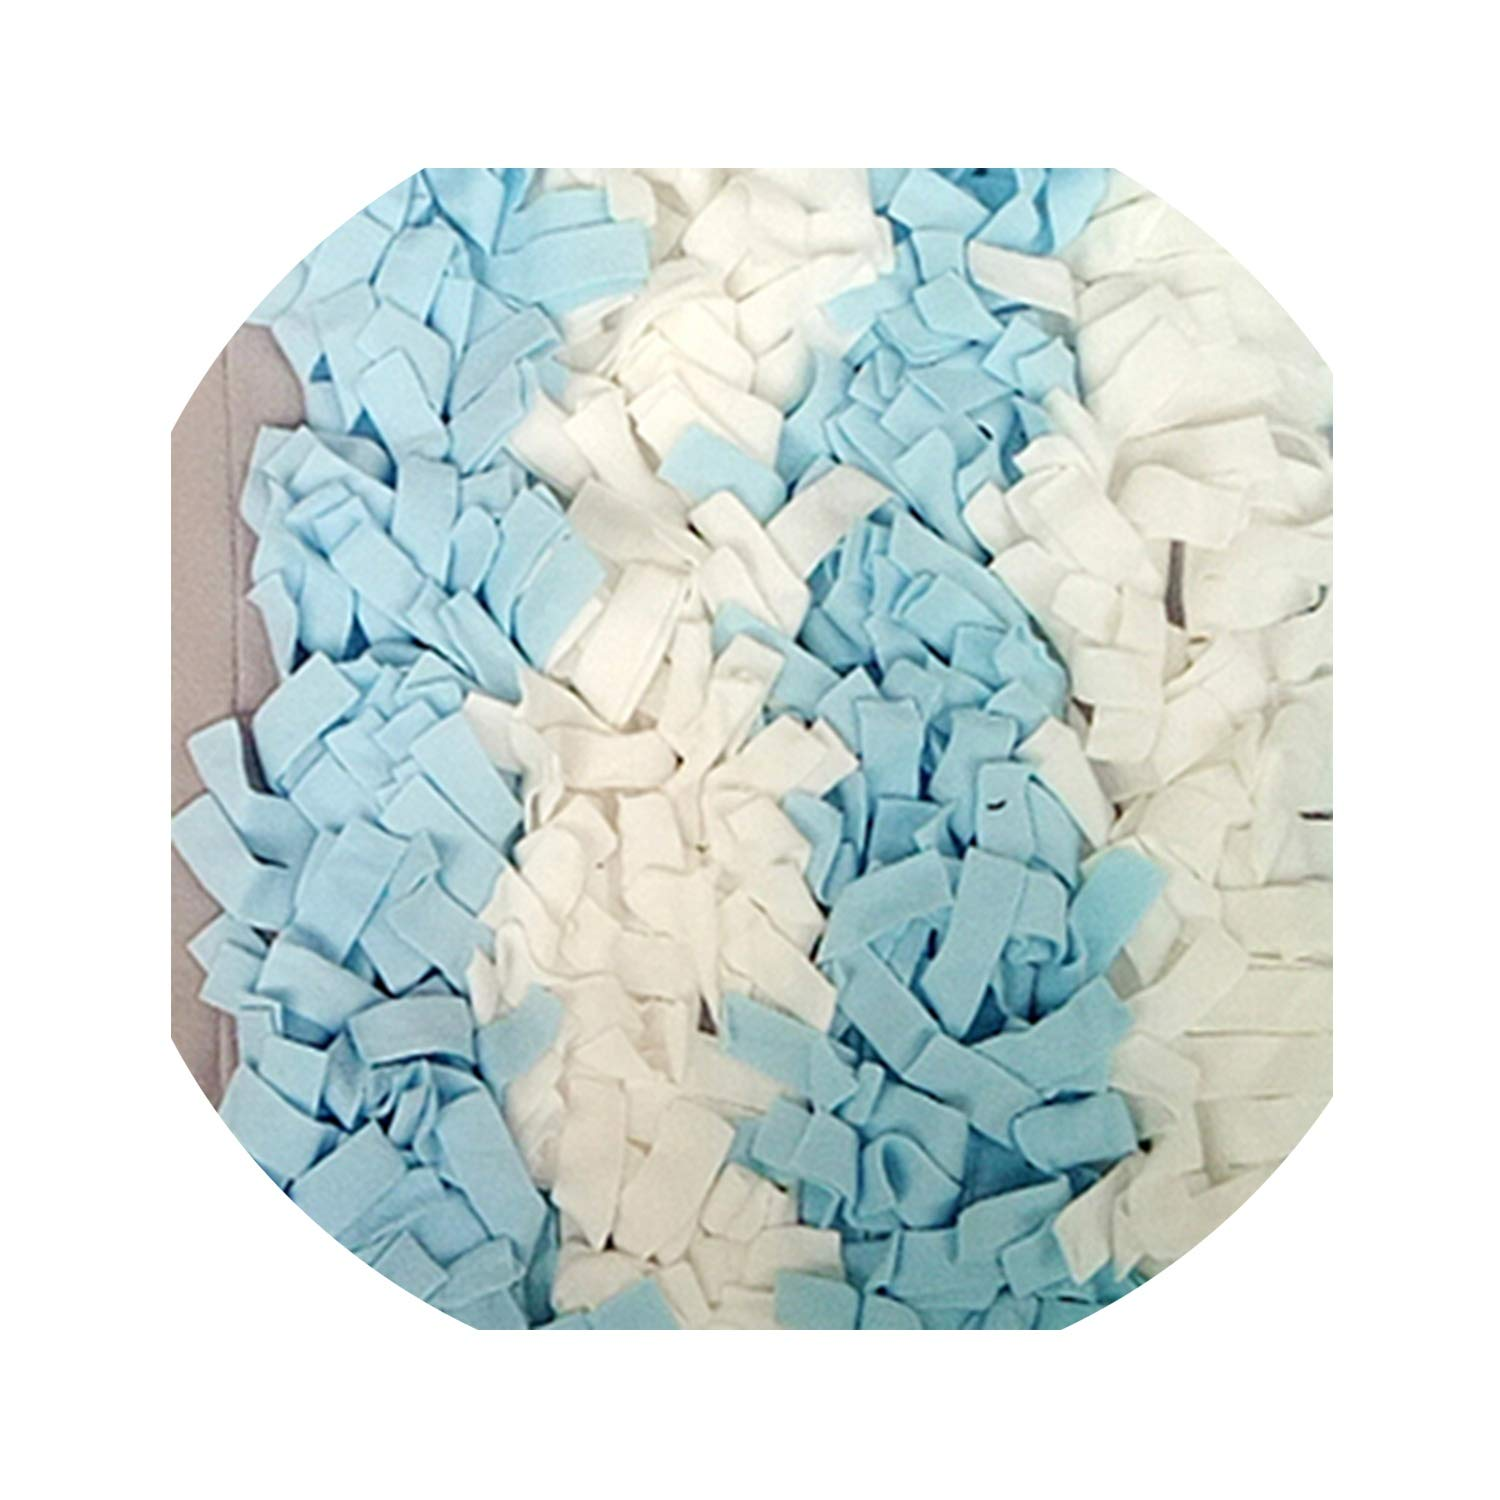 Fanjie's Department store Handmade Dog Play Mat Snuffle Training Feeding Foraging Mat Nose Work Blanket Pet Toys,Blue,L 100 X 100Cm by Fanjie's Department store